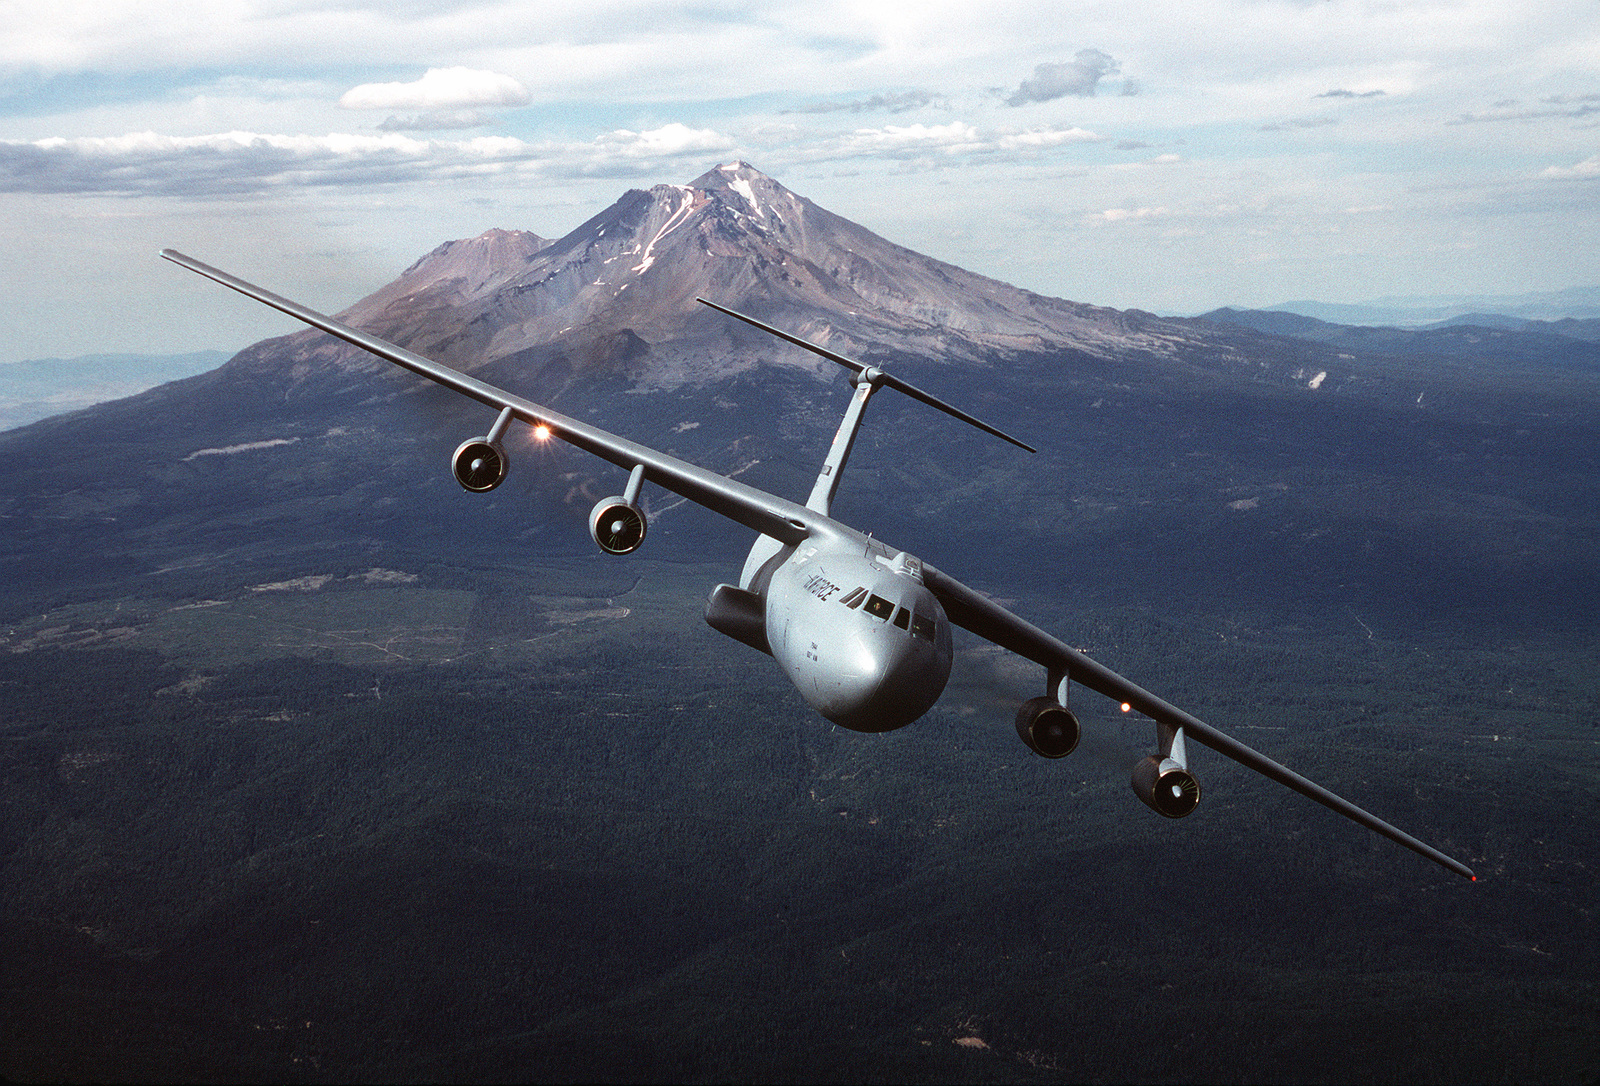 Air to air front view of a USAF's Air Mobility Command, C-141B Starlifter transport aircraft from the 60th Airlift Wing, Travis Air Force Base, California with California's Mt. Shasta in the background. Exact Date Shot Unknown